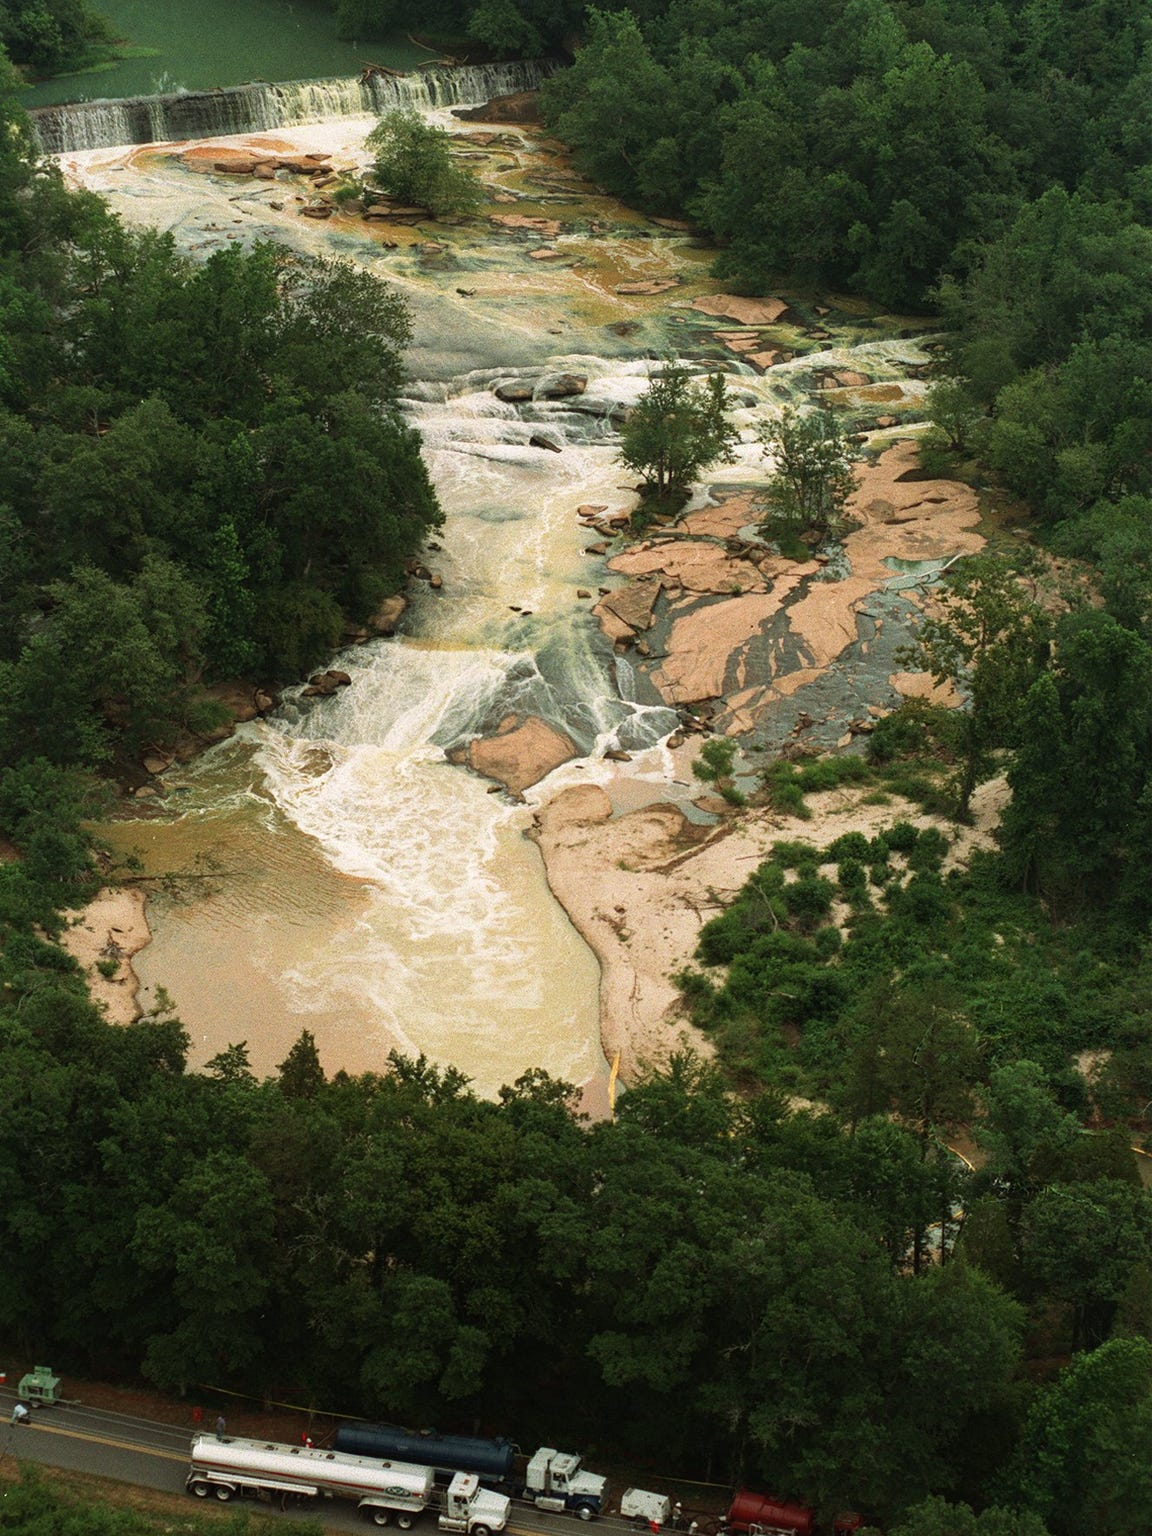 1996 file photo of contaminated Reedy River after Colonial